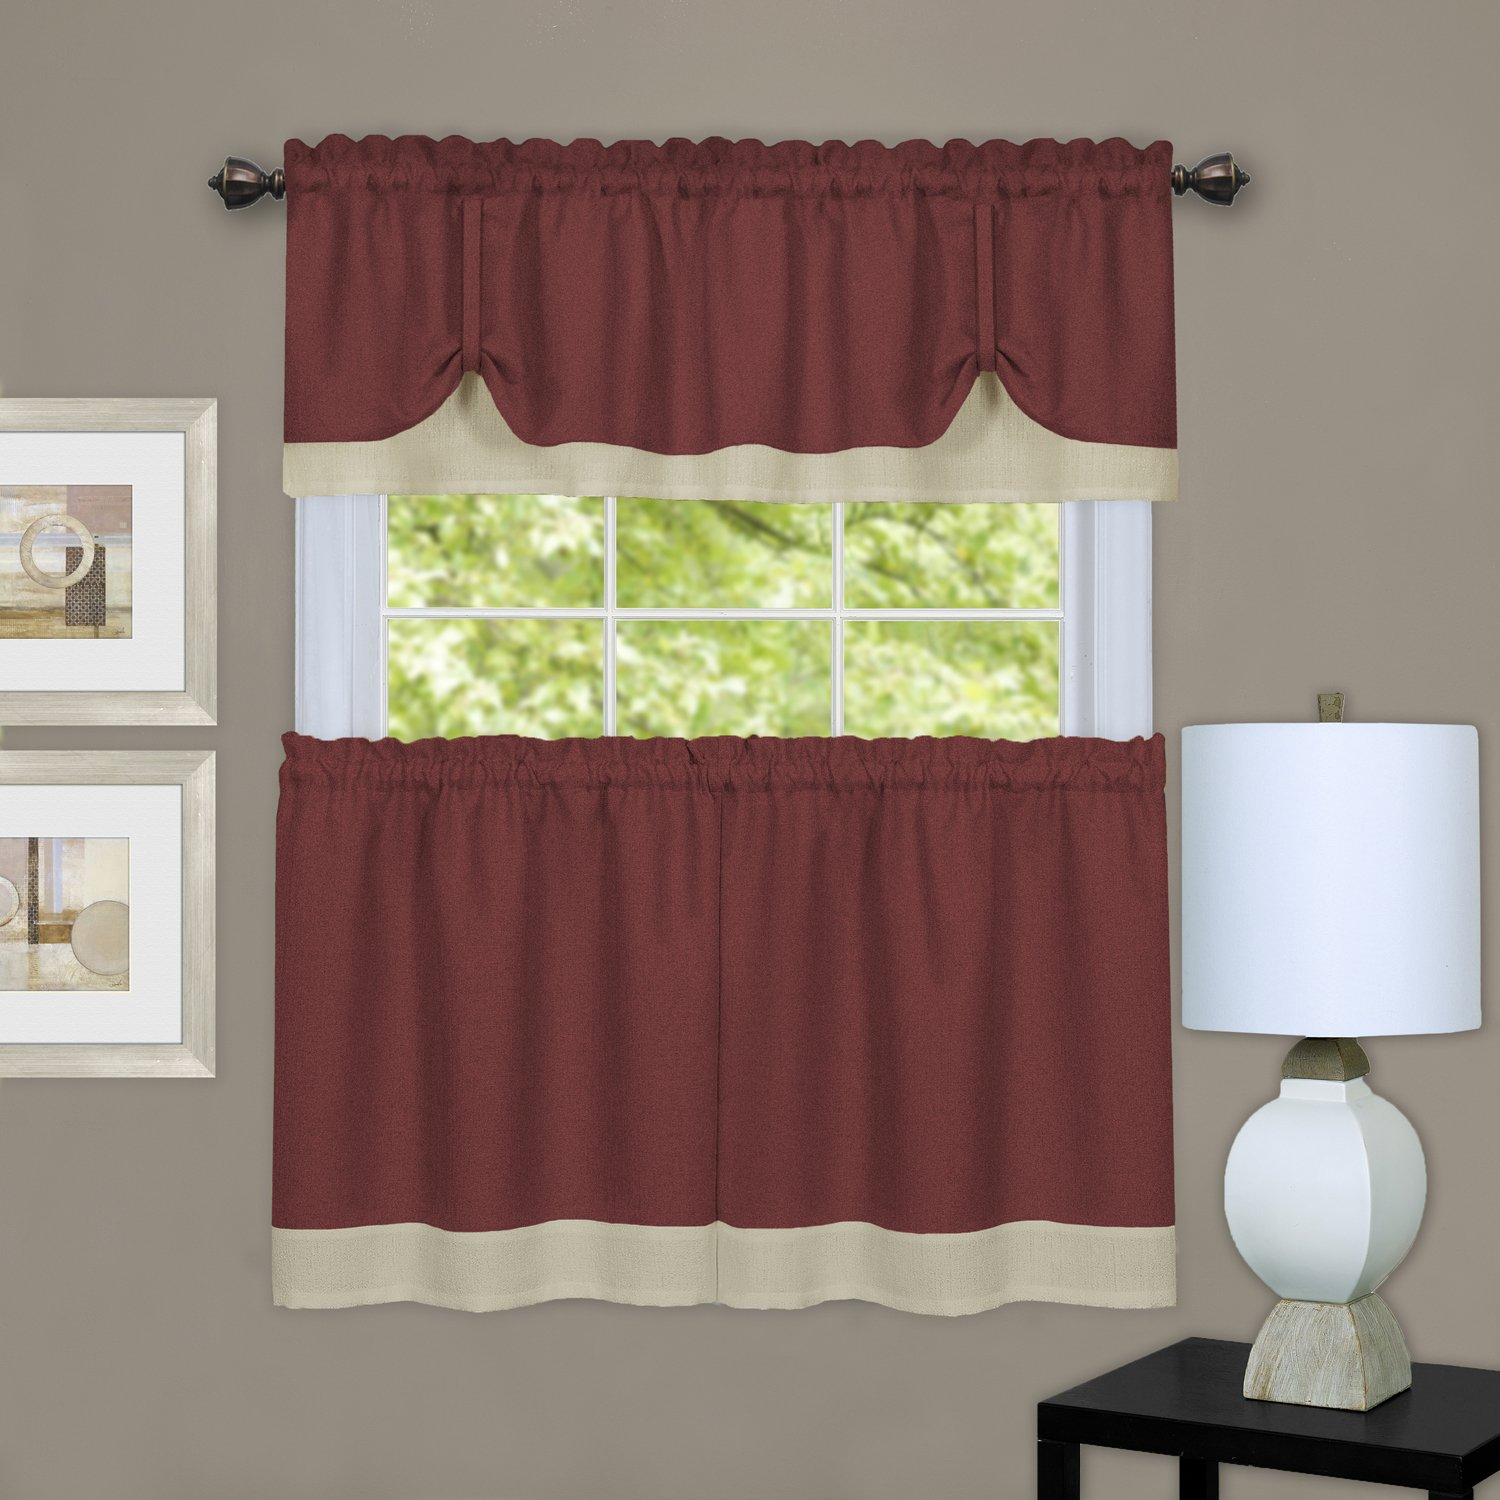 Achim Home Furnishings Fairfield Window in a Bag, 55 84-Inch, Burgundy, Rod Pocket Panel 52